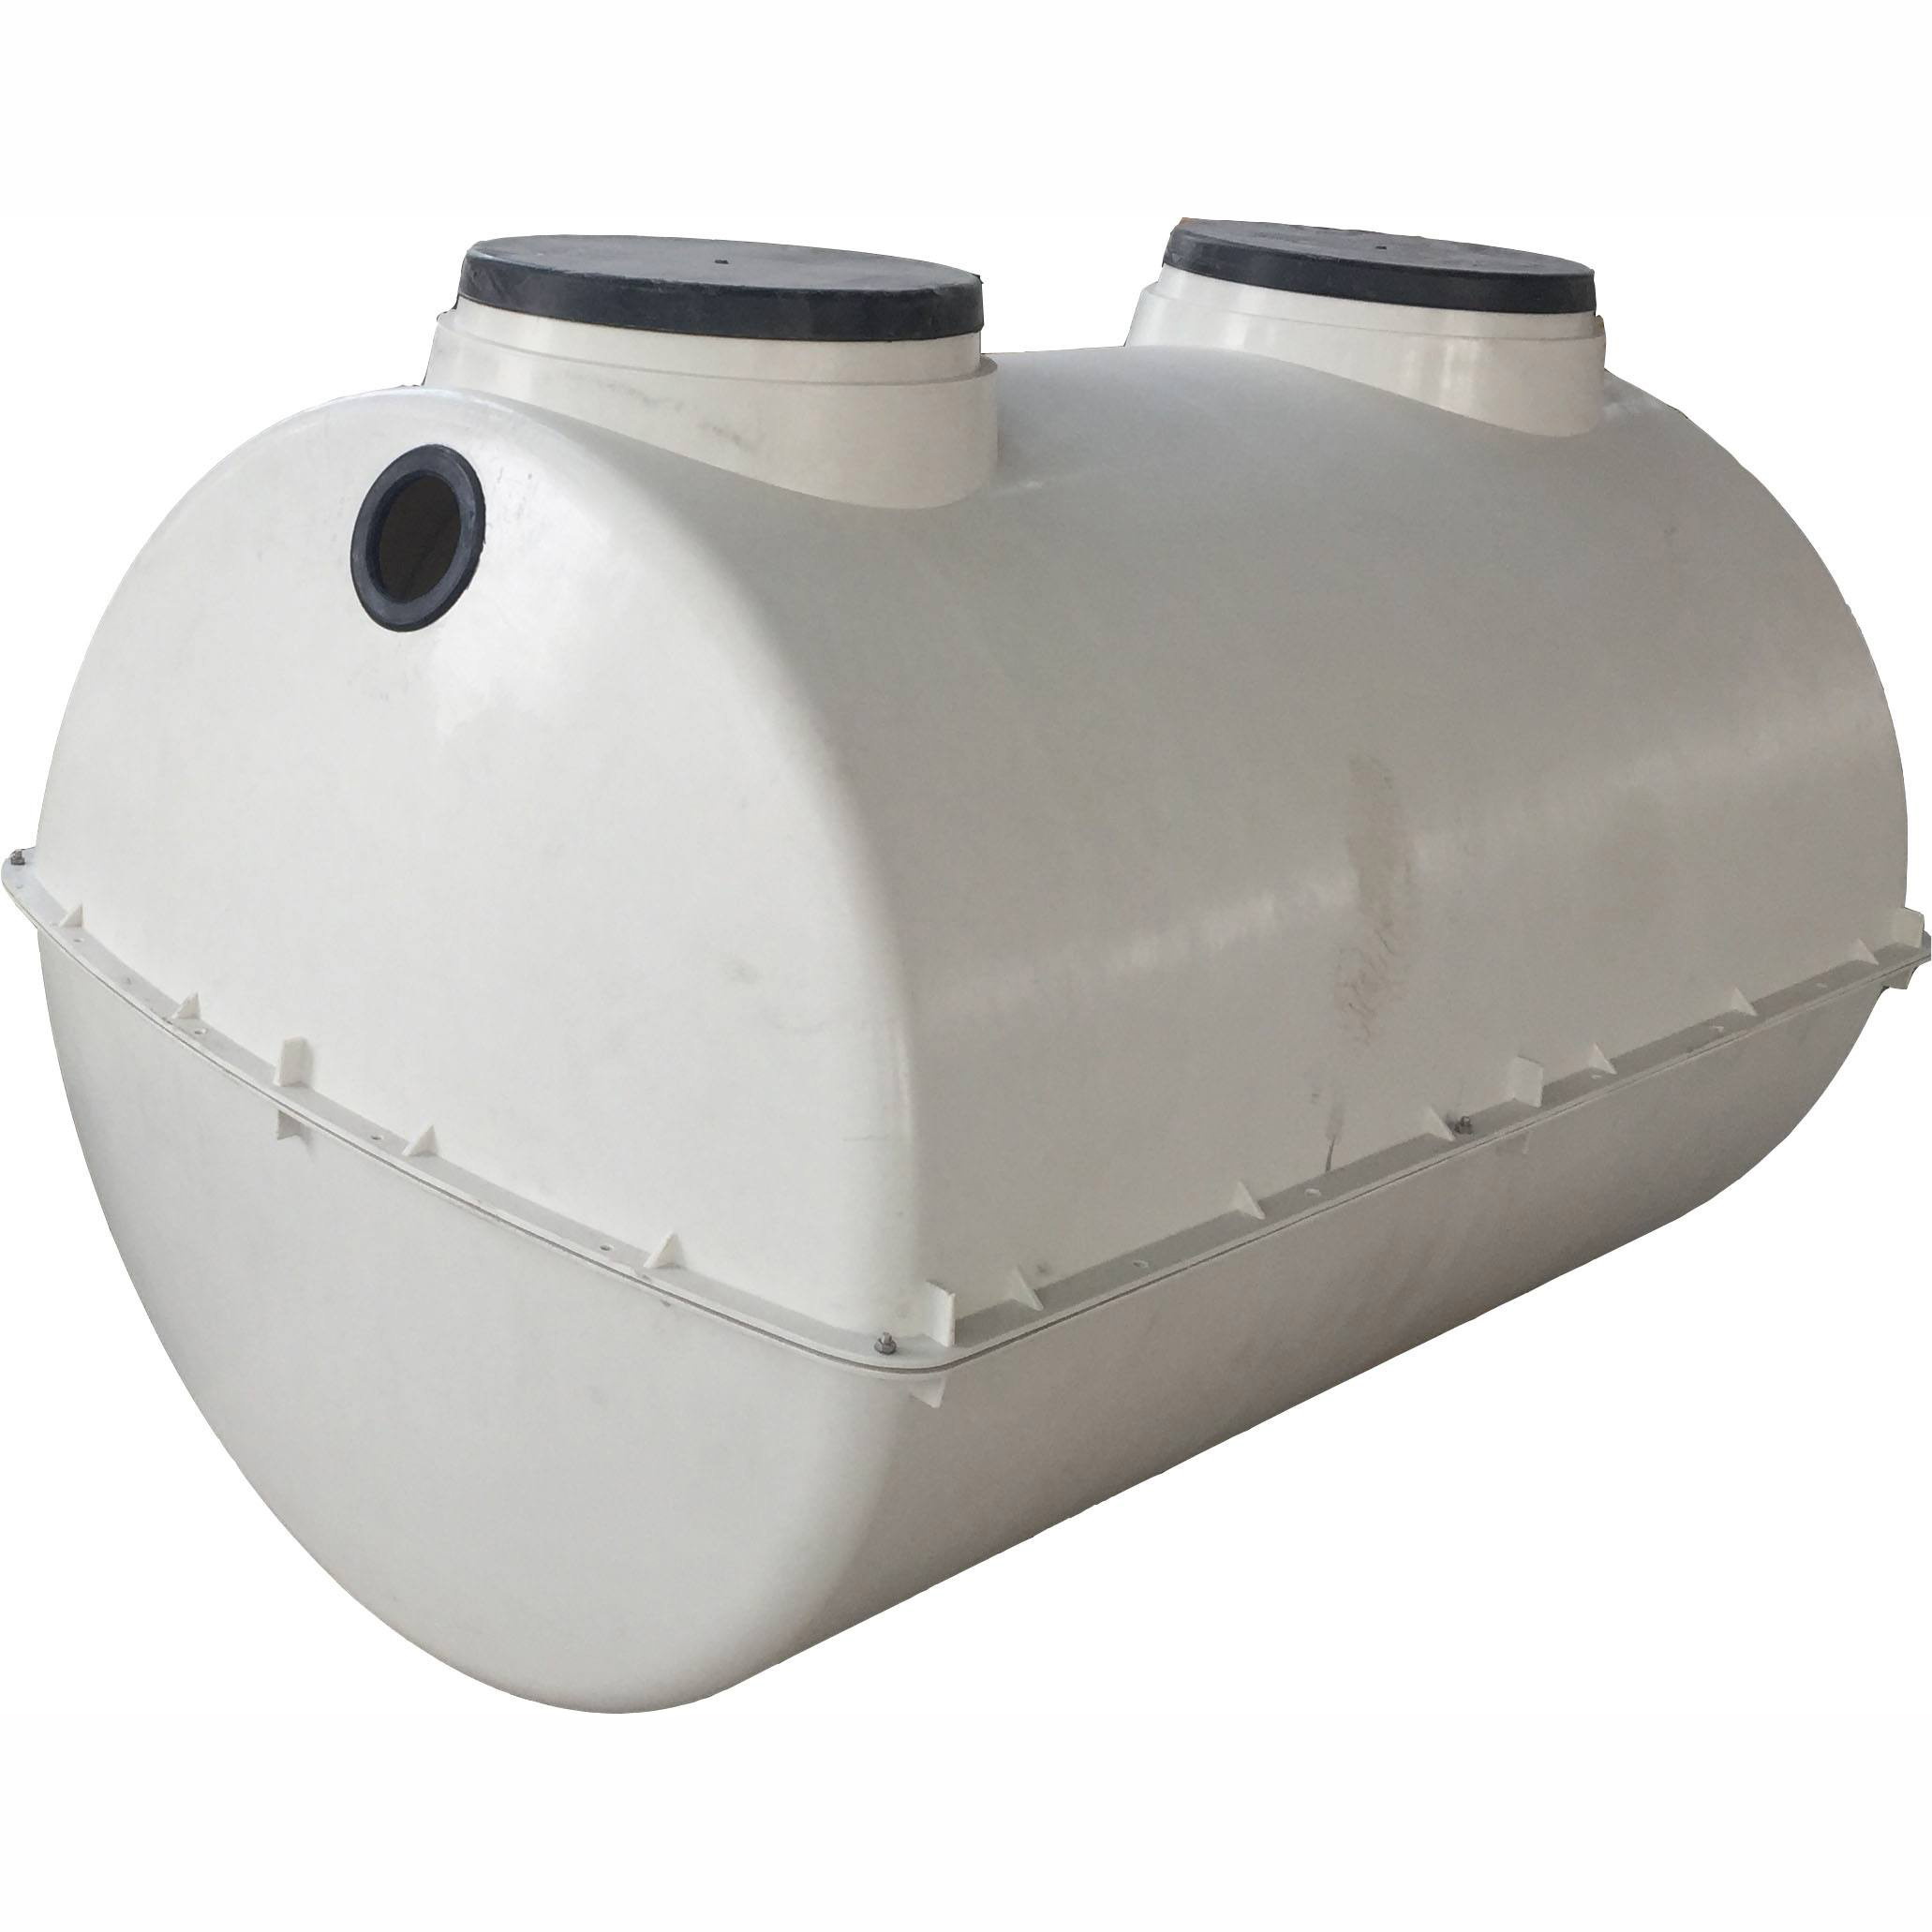 Best Quality and Portable SMC septic tank